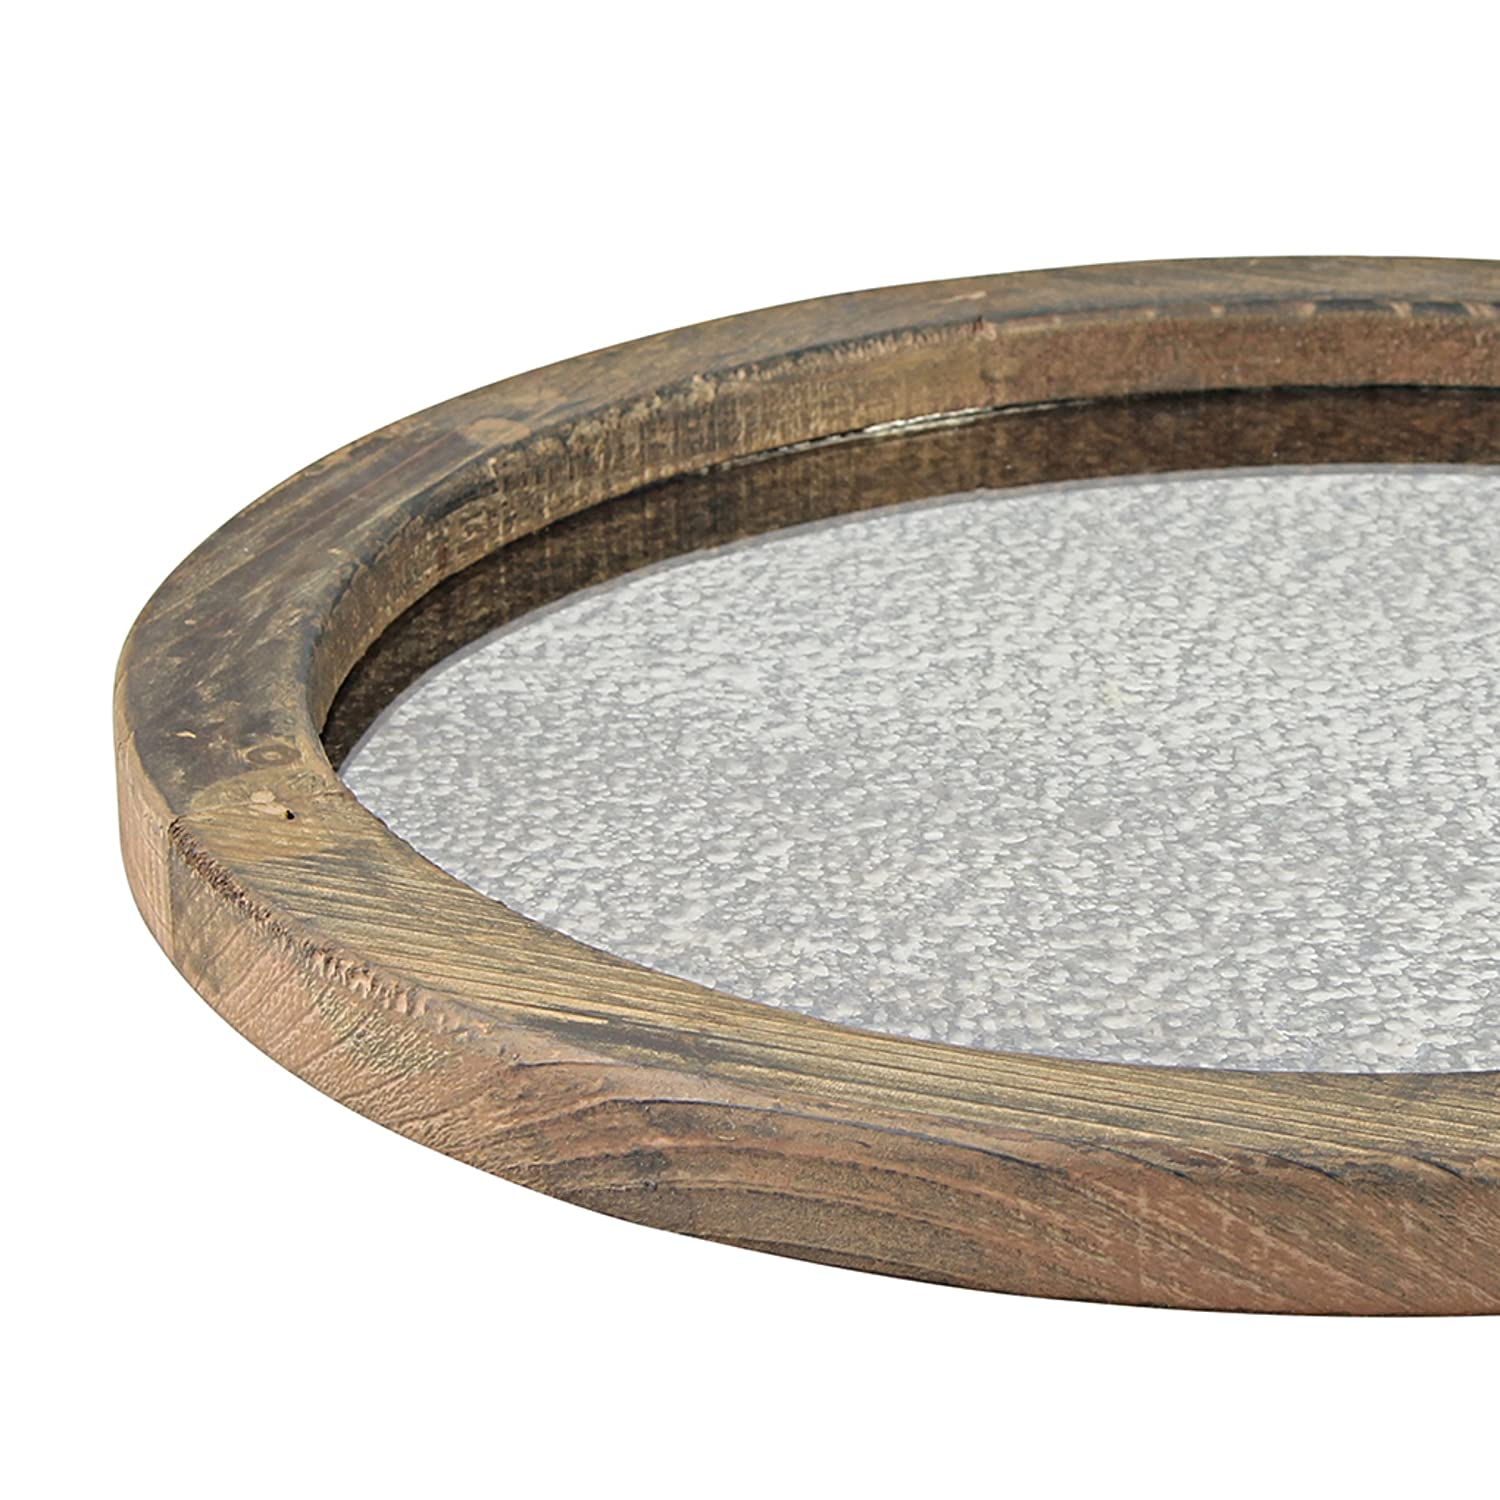 Unique Coffee Centerpiece for The Coffee Table or Any Table Top Dining Table Rustic Butler Tray Stonebriar Round Natural Wood Serving Tray with Antique Mirror